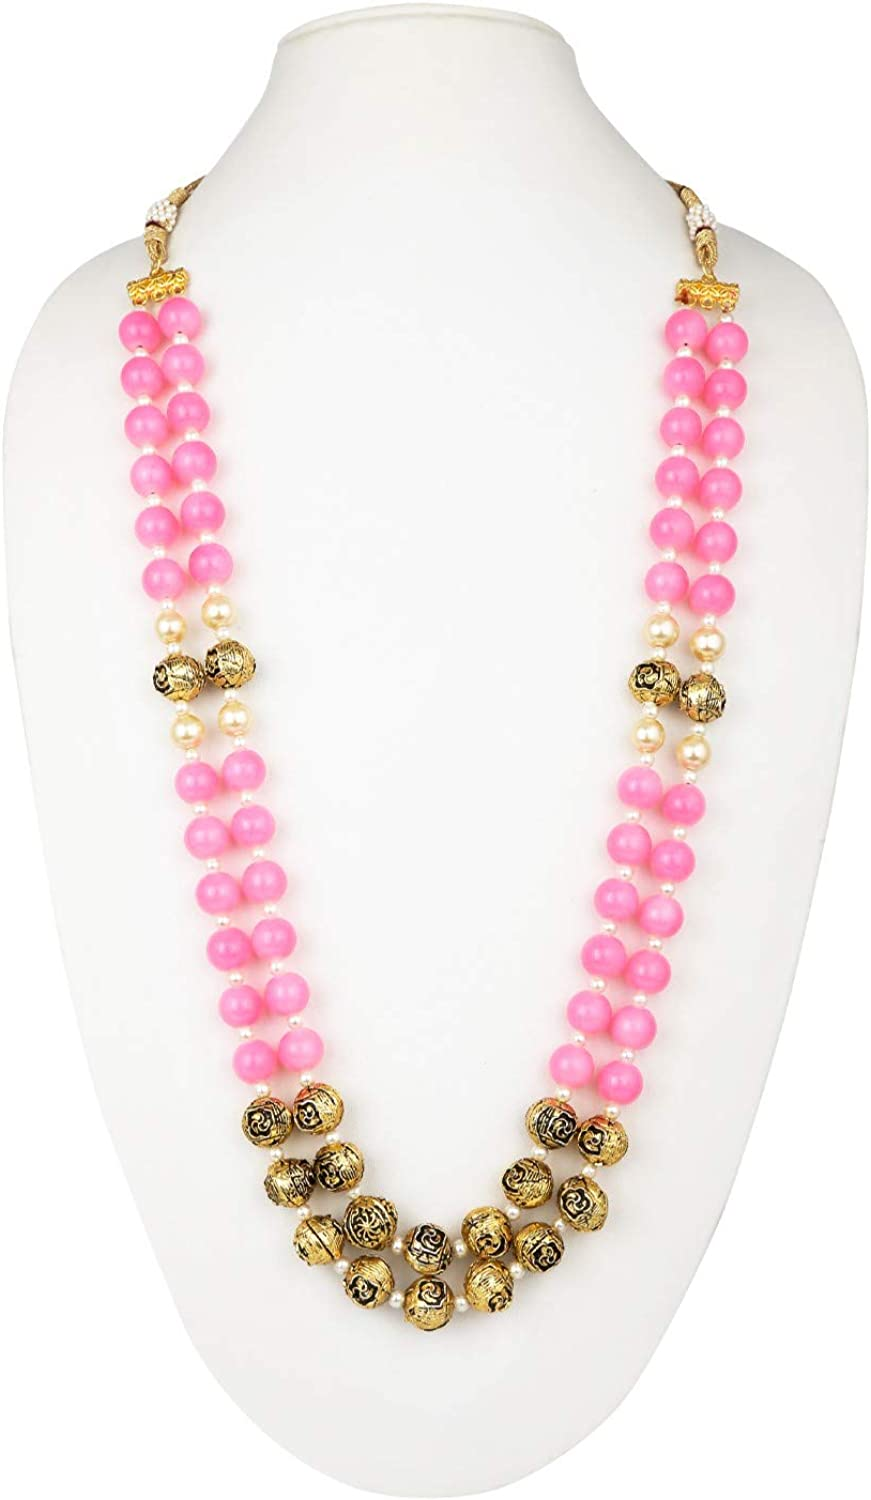 Efulgenz Indian Bollywood Antique Multi Layered Faux Pearl Beaded Bridal Wedding Strand Statement Necklace Jewelry (Color Options)